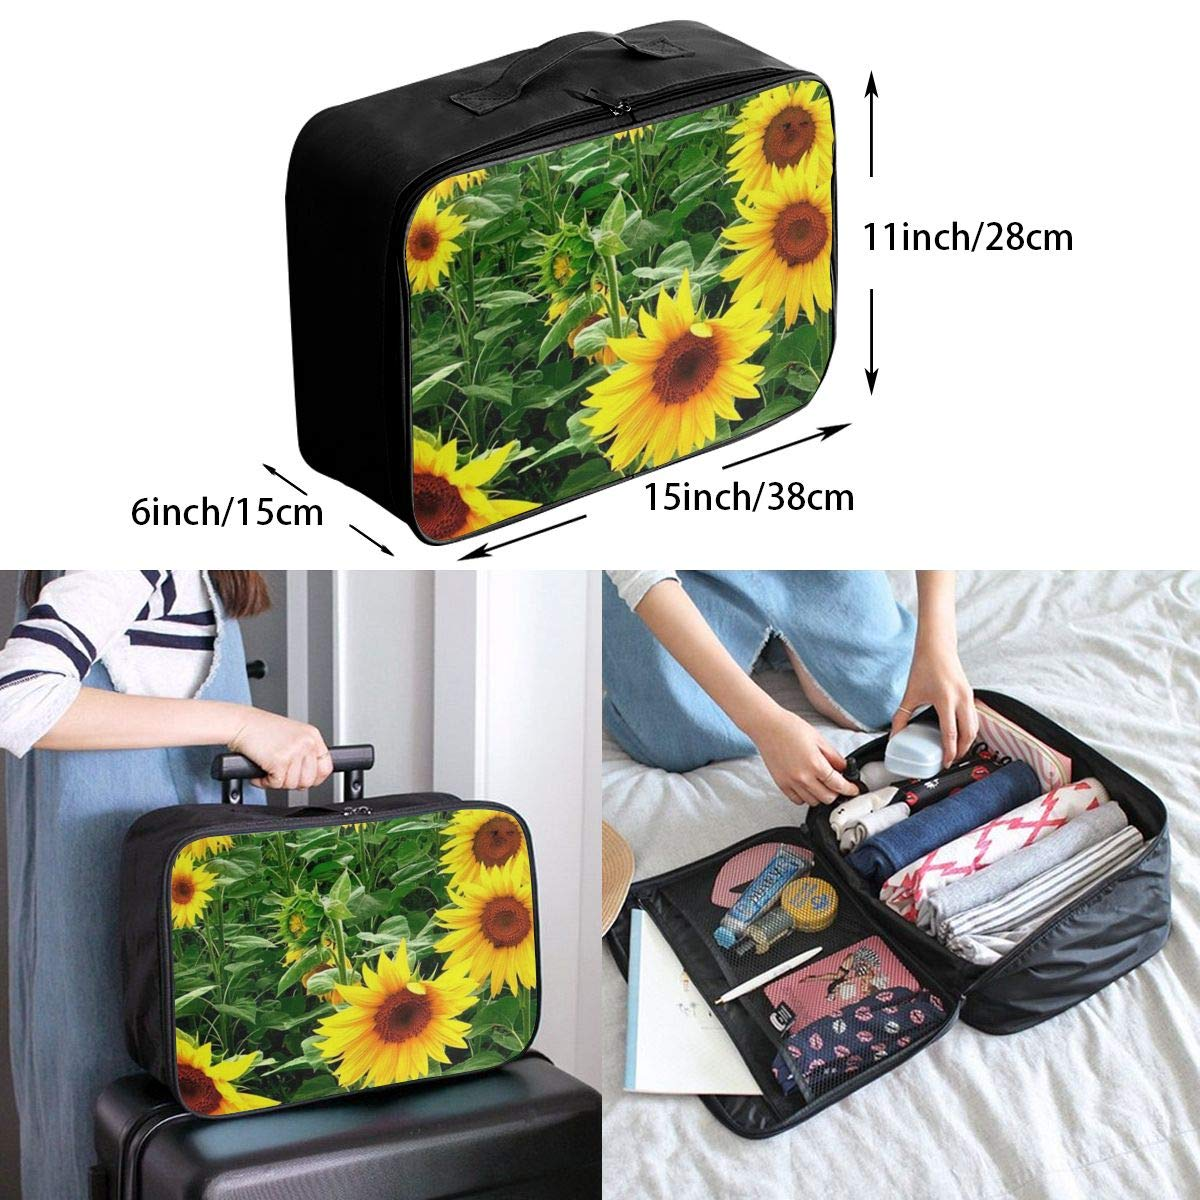 Travel Duffle Bag Sunflowers Patterned Weekender Bag Water Repellent Foldable Nylon Luggage Duffel Bag For Sports Holiday Tote Bag In Trolley Handle Party Gym